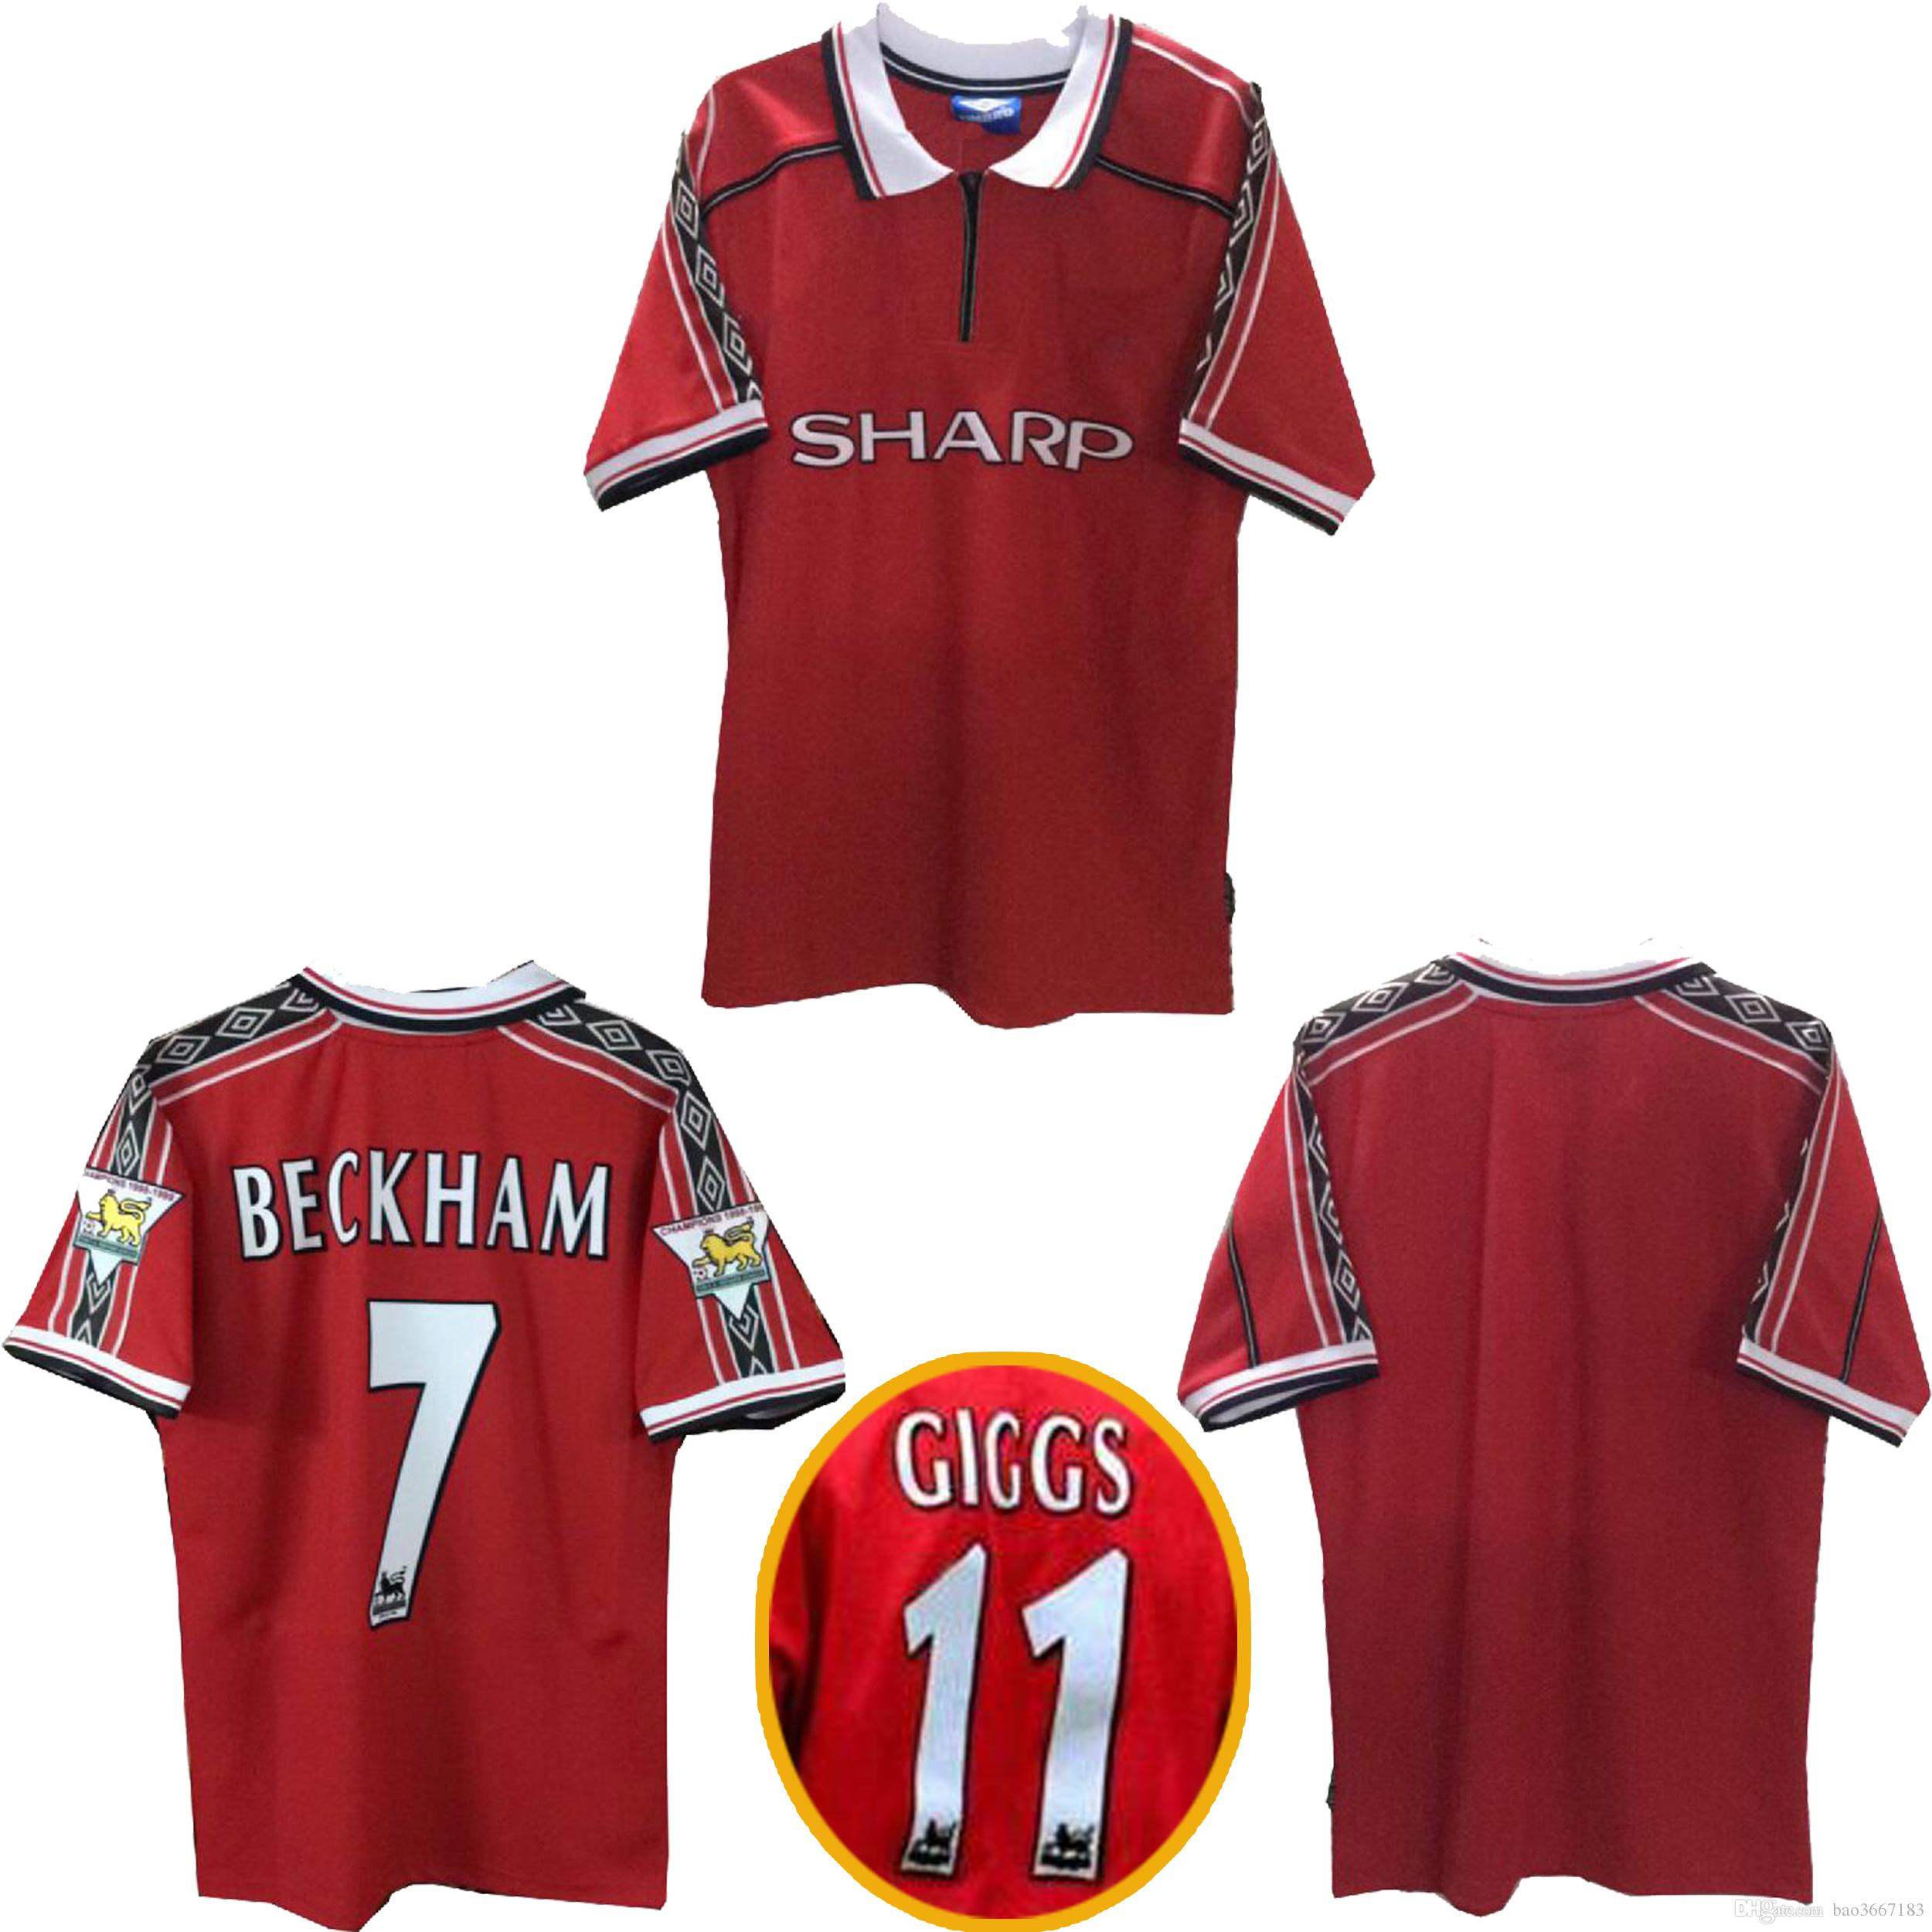 f19c84d3a 2019 Thai Quality 1998 1999 Man Unite Retro Soccer Jerseys 1998 1999 BECKHAM  Giggs Football Shirt 1998 1999 Man Unite Legendary Retro Jersey From  Bao3667183 ...